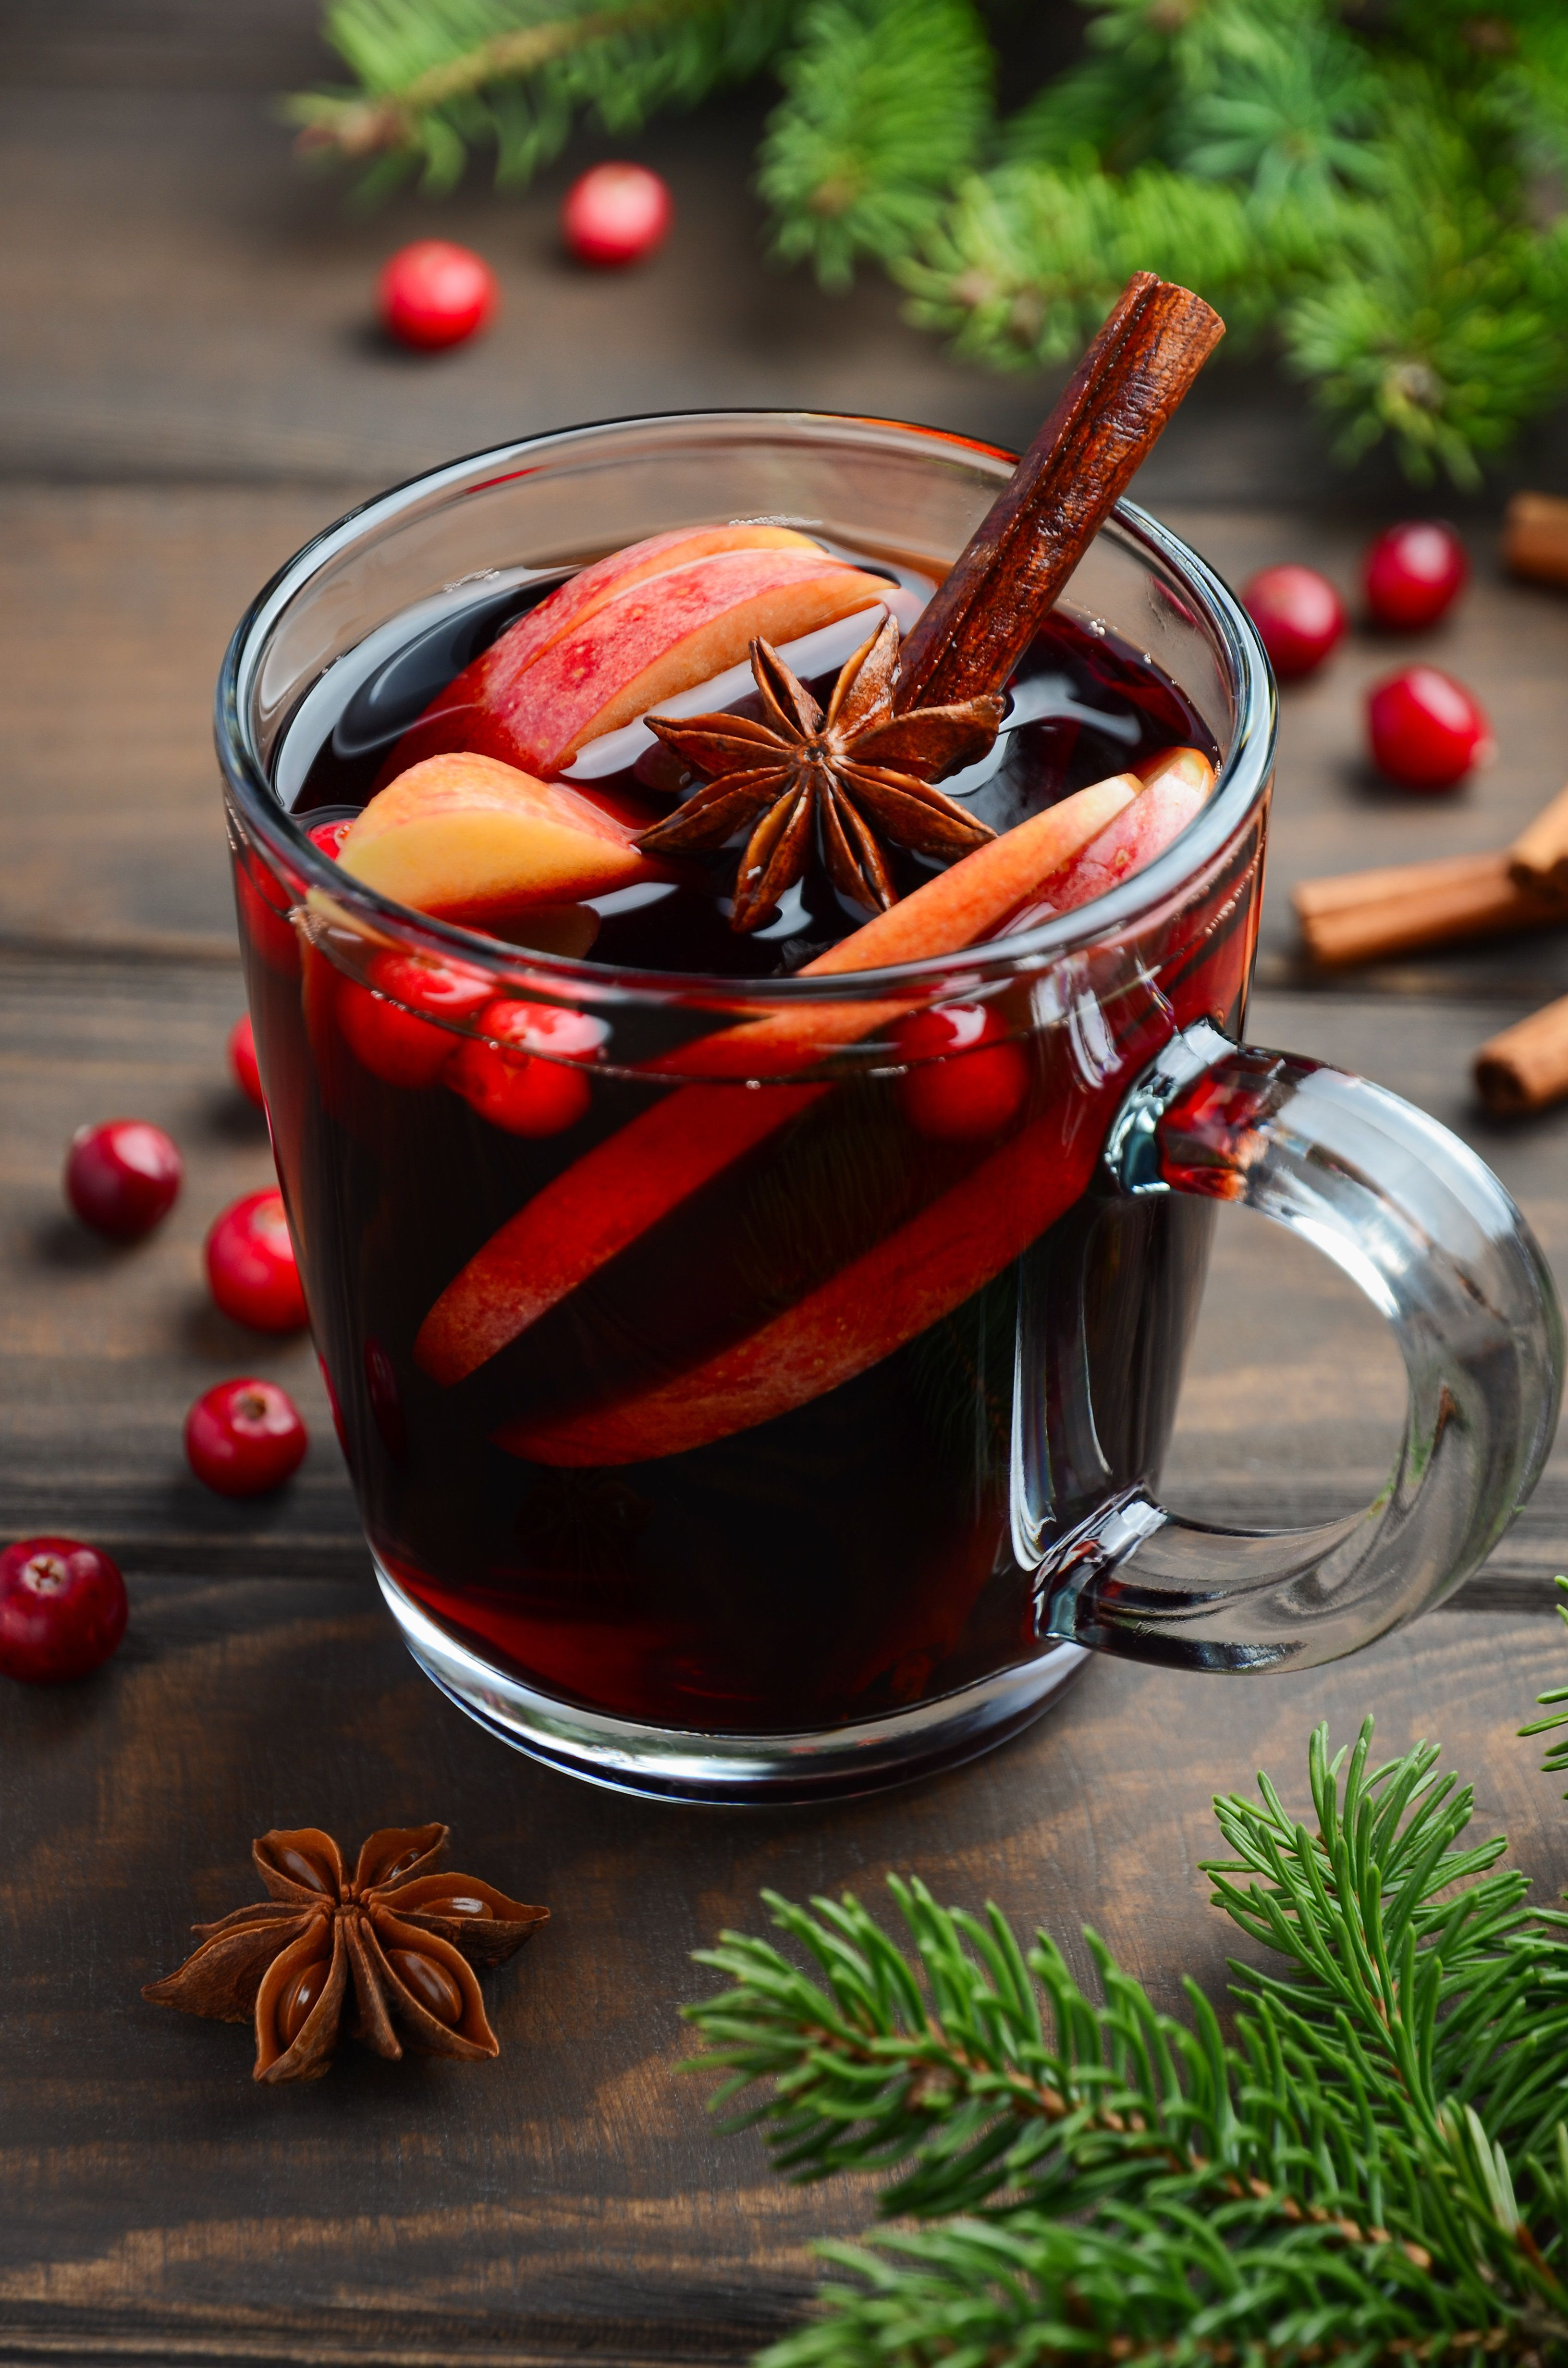 HuffPost Food & Drink's December Theme: Drinking And